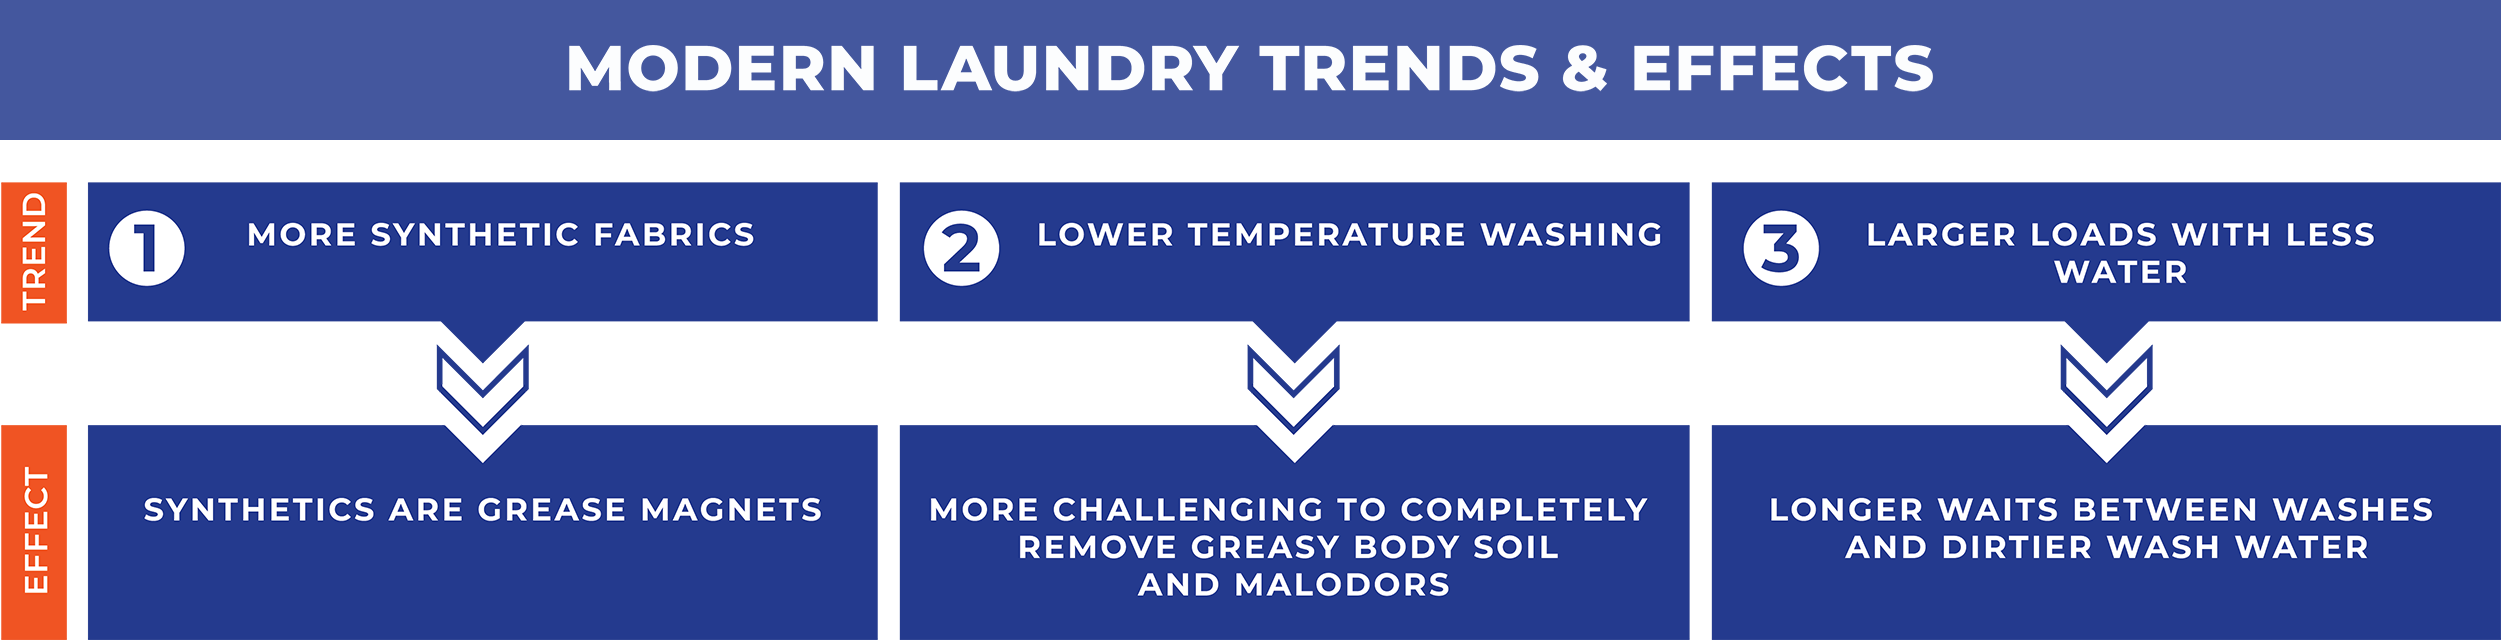 Synthetic fibers and HE washing machines can lead to lingering odors.